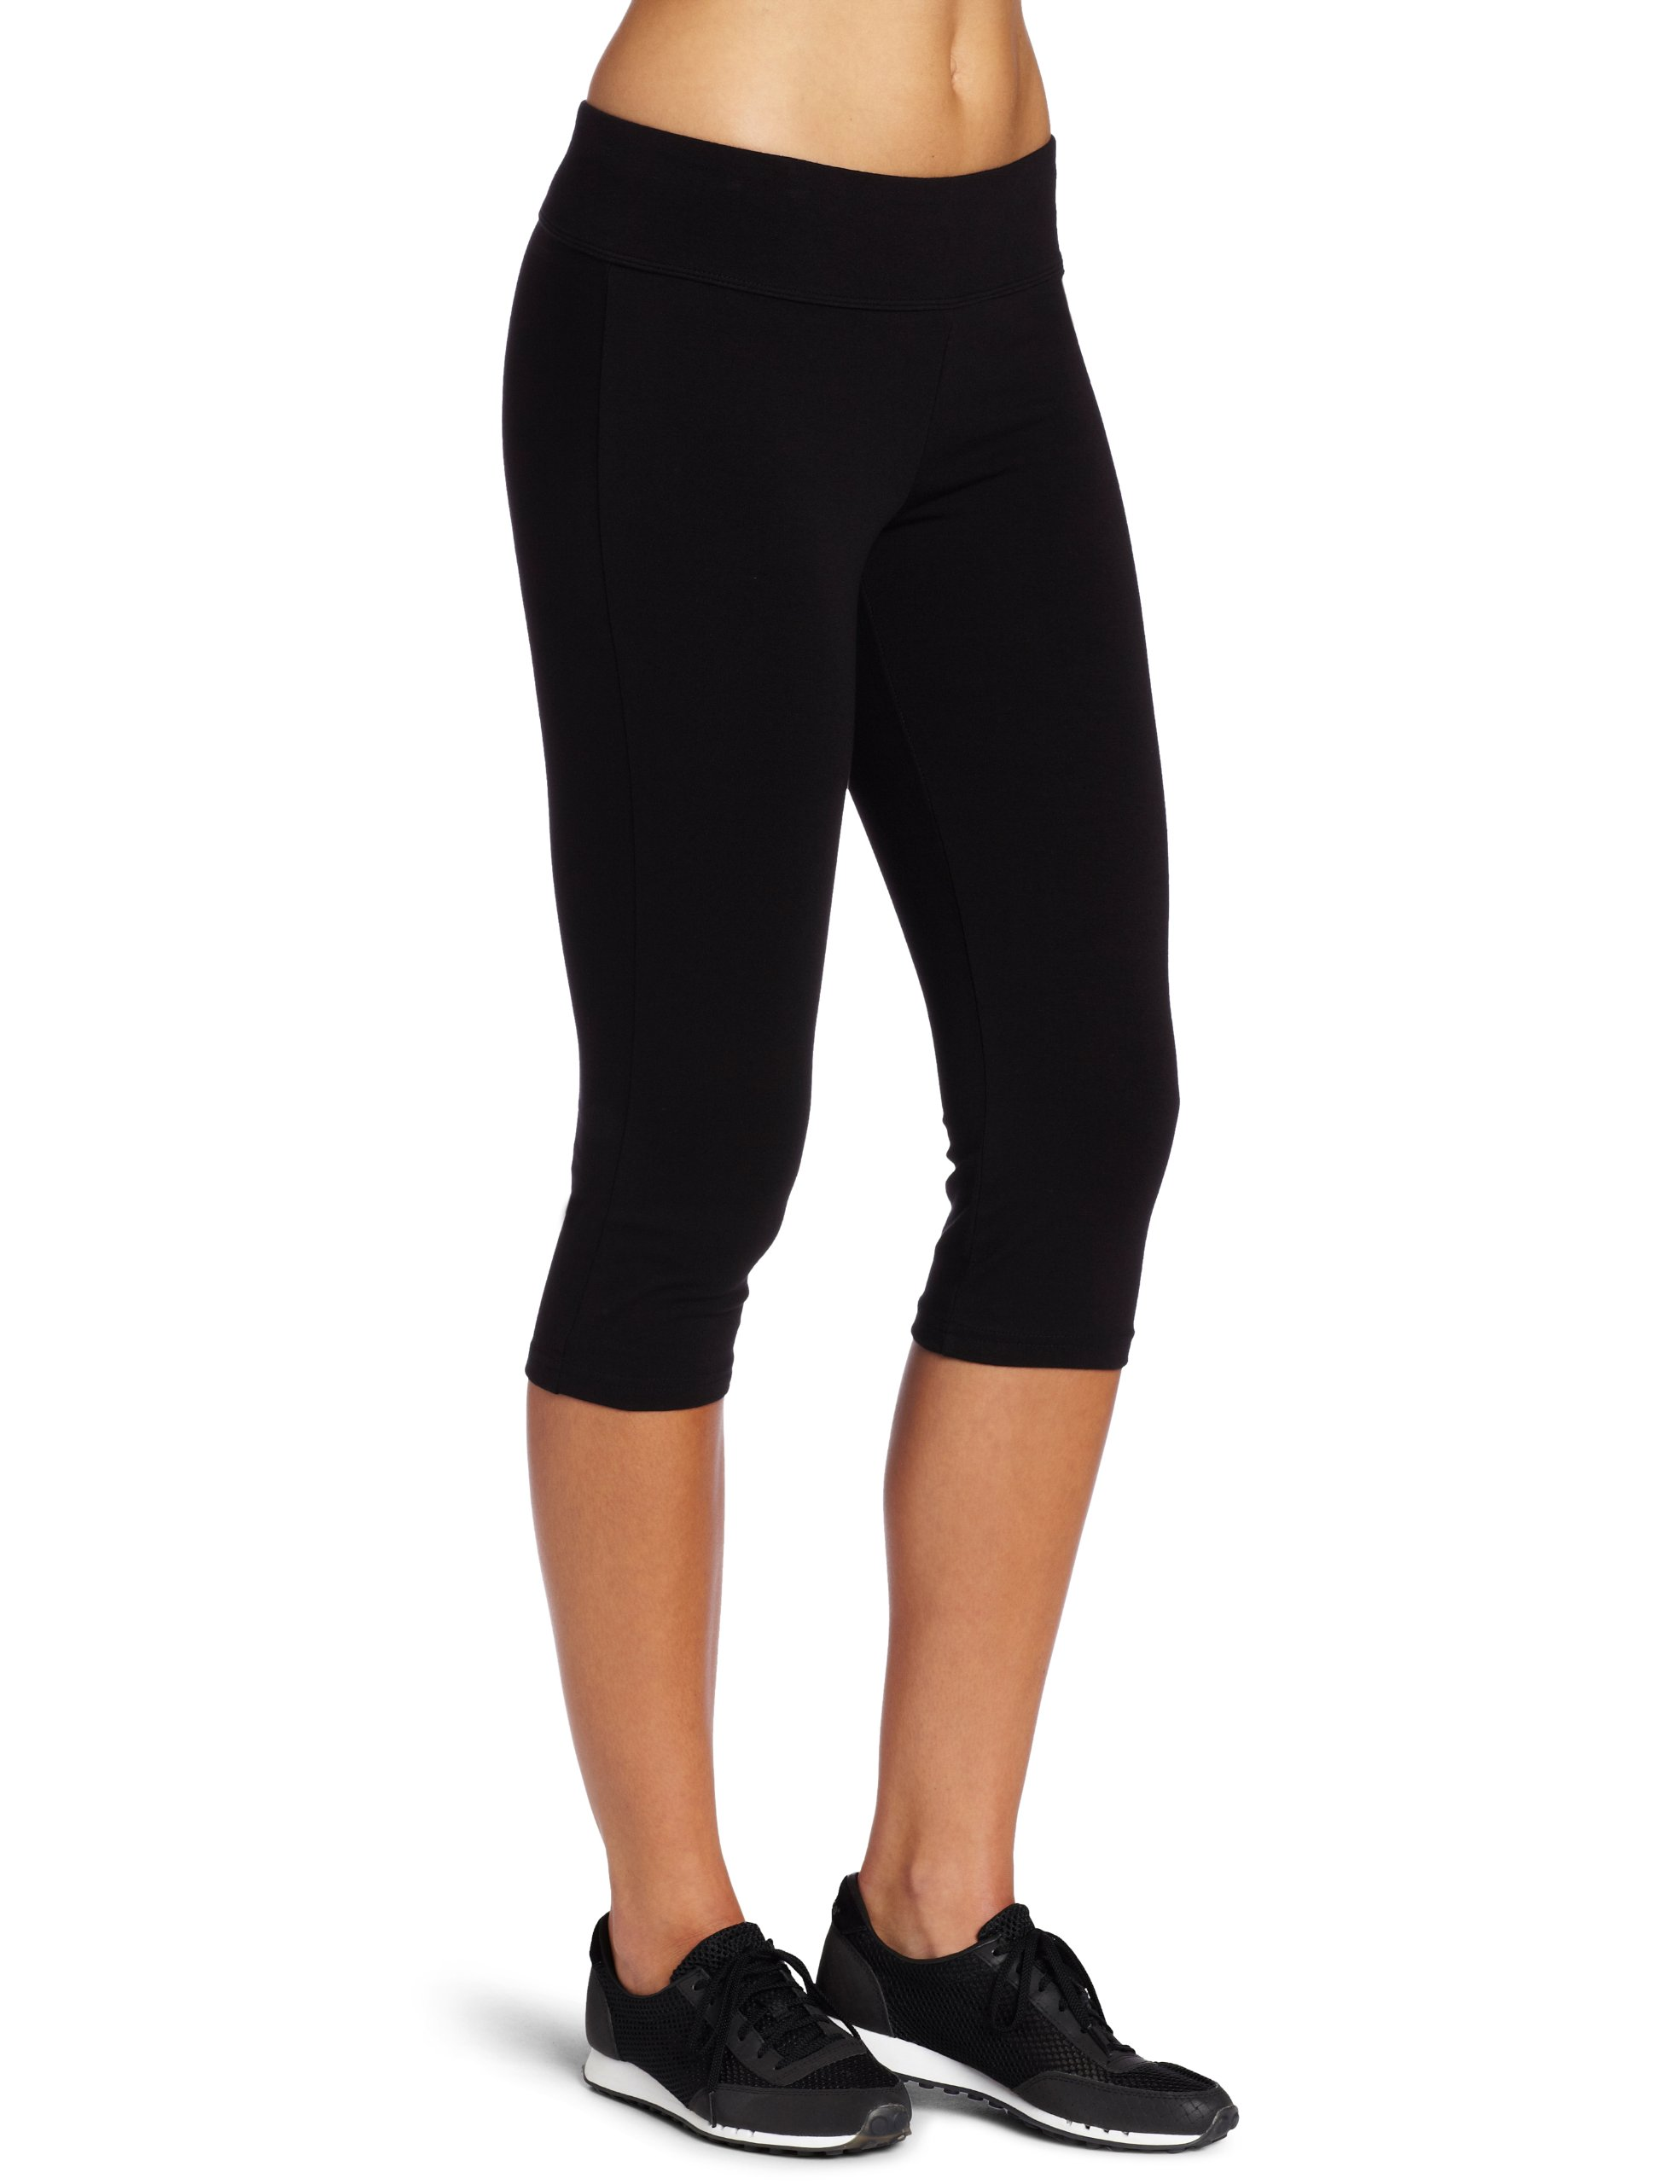 Spalding Women's Capri Legging - Large - Black